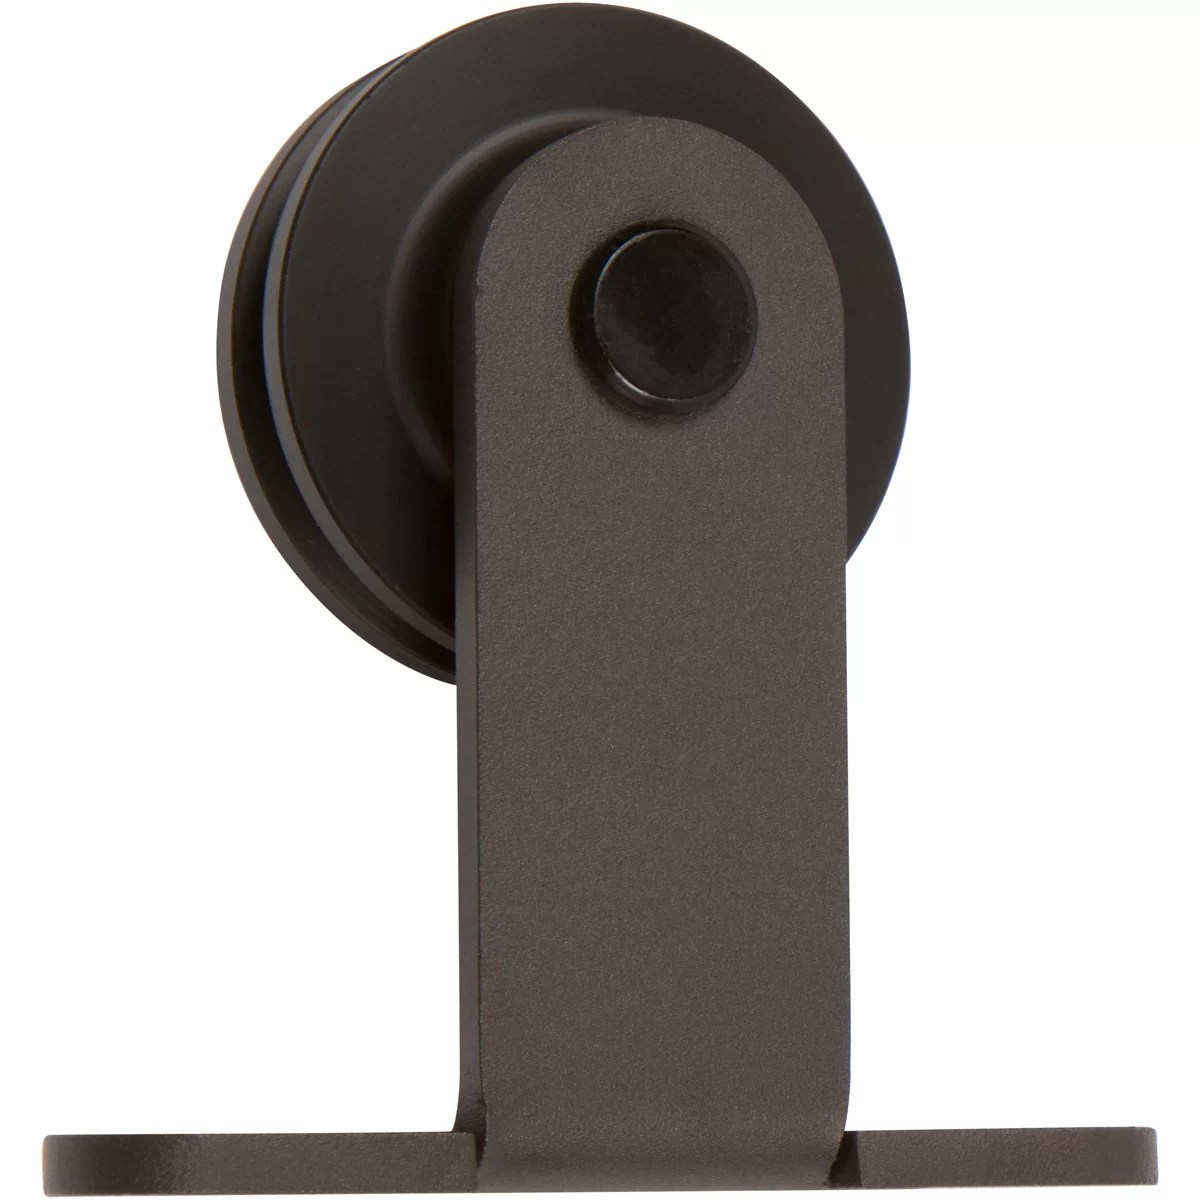 Barn Door Wheels 3000 Series Standard Single Barn Door Hardware Kit